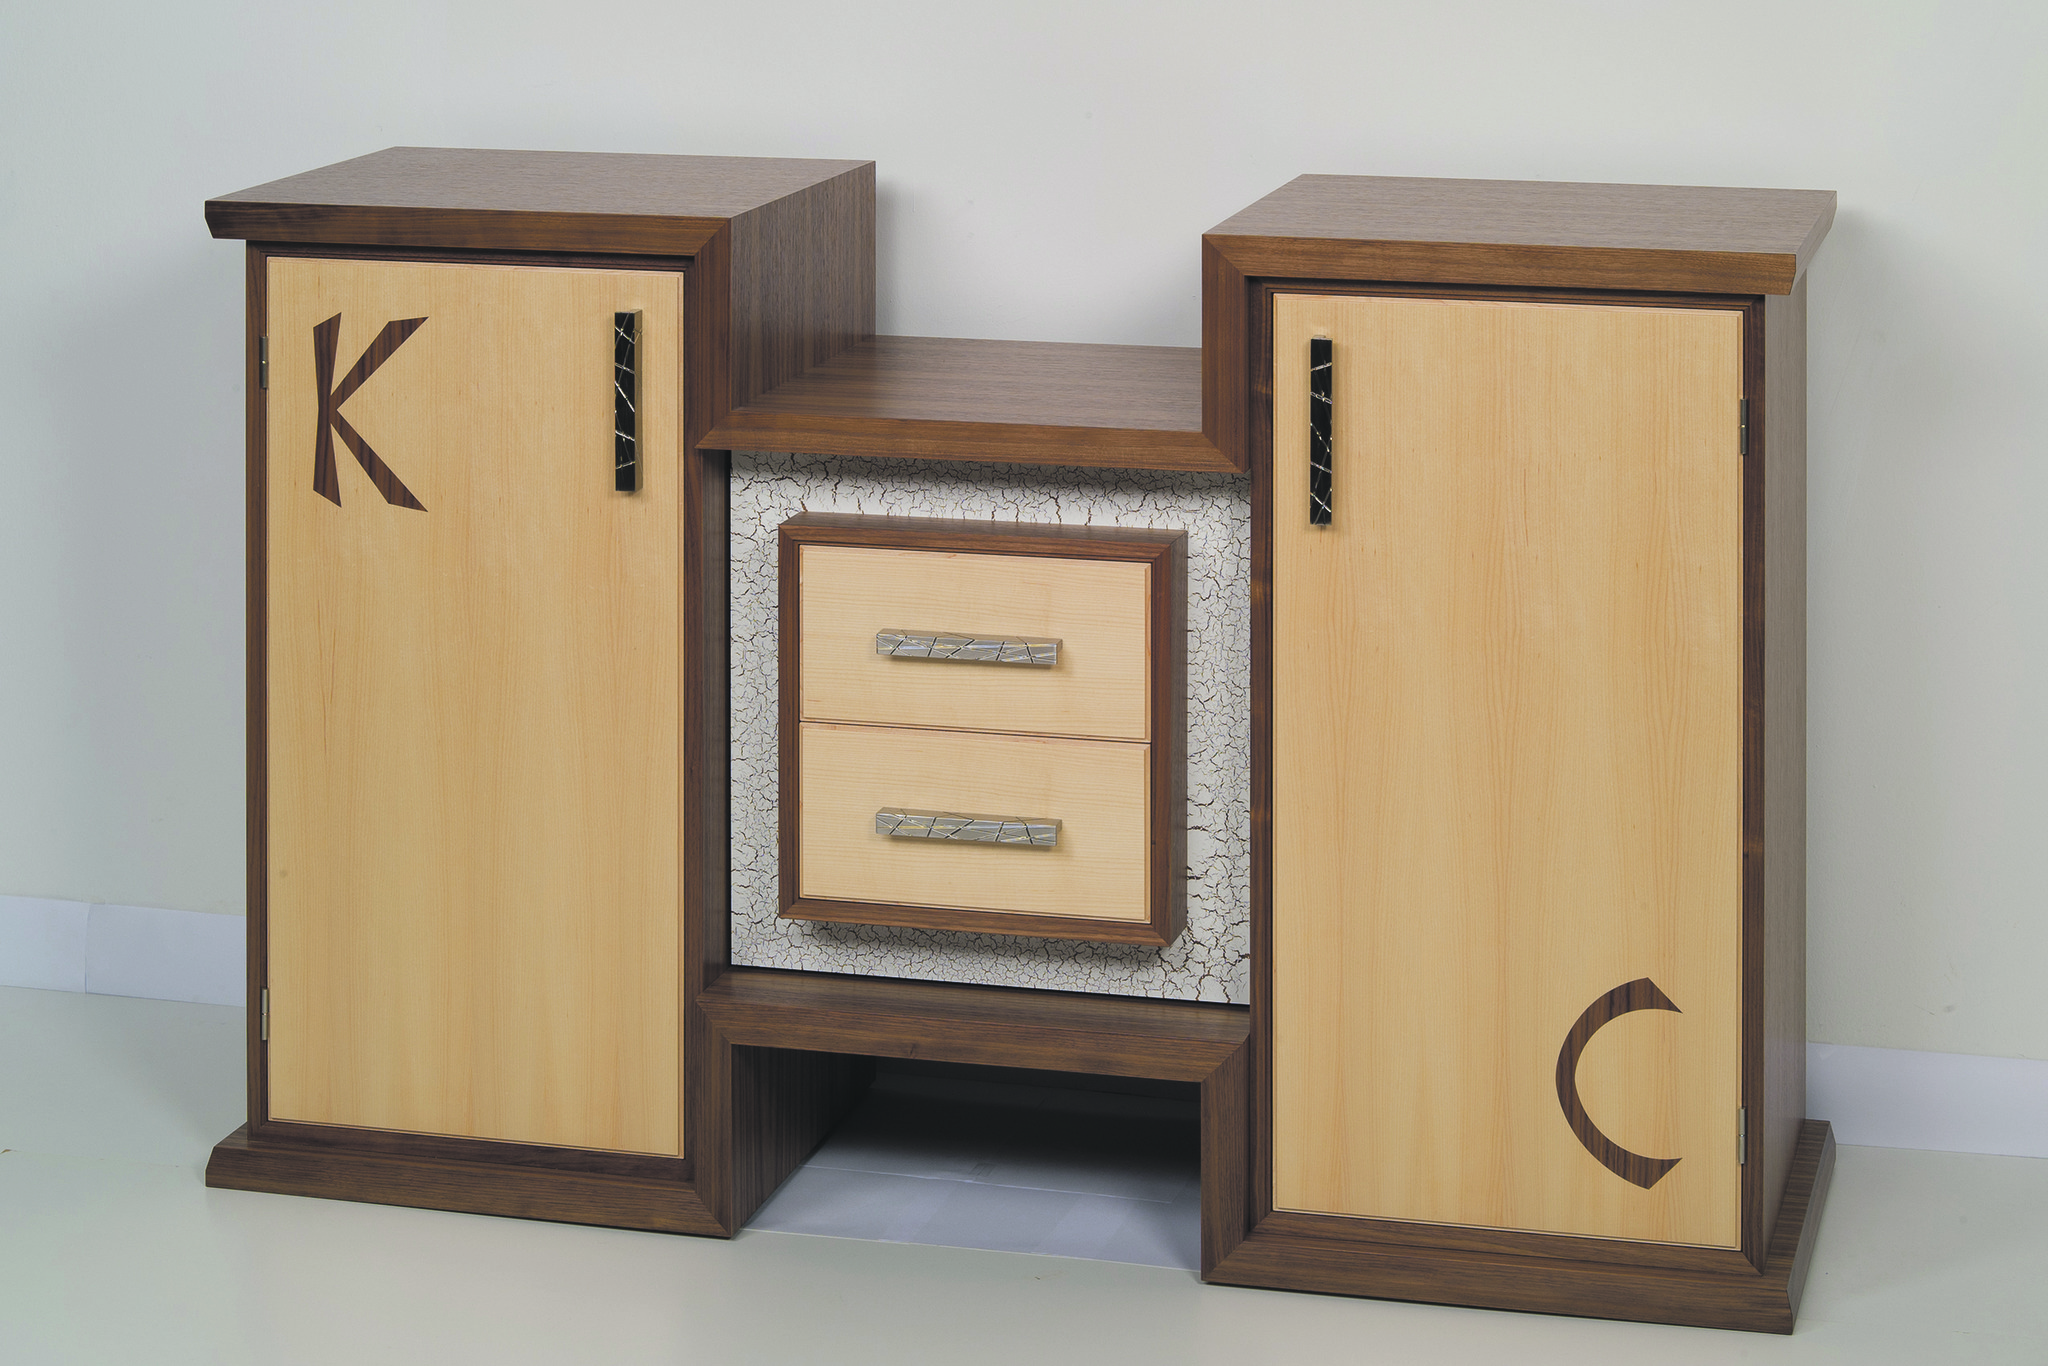 abstimmen f r eggelsberger tischler braunau. Black Bedroom Furniture Sets. Home Design Ideas